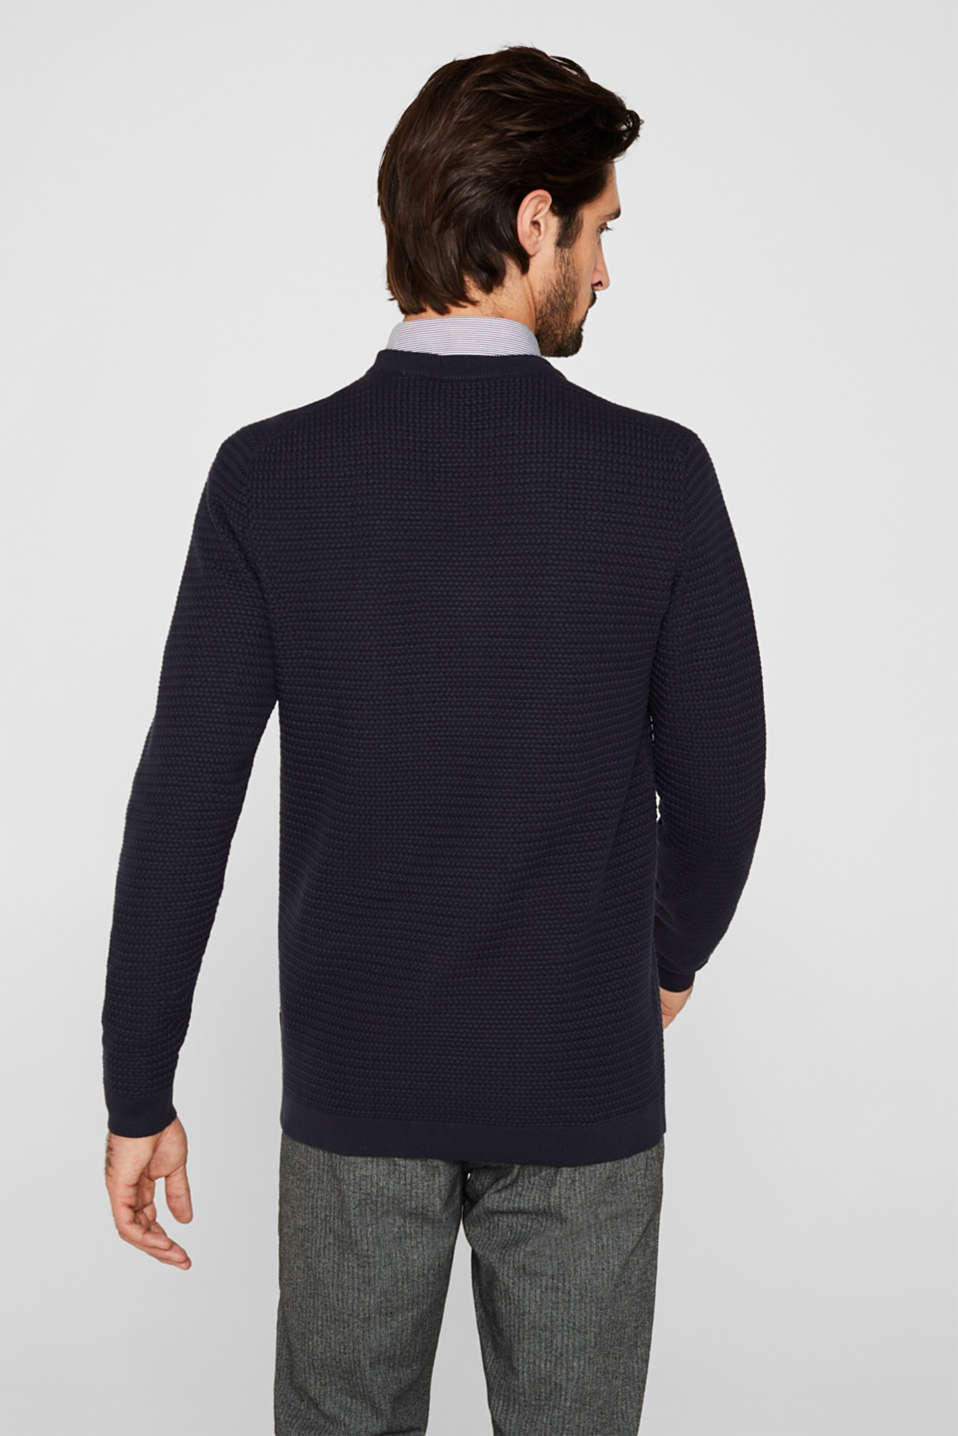 Textured jumper made of 100% cotton, NAVY, detail image number 3